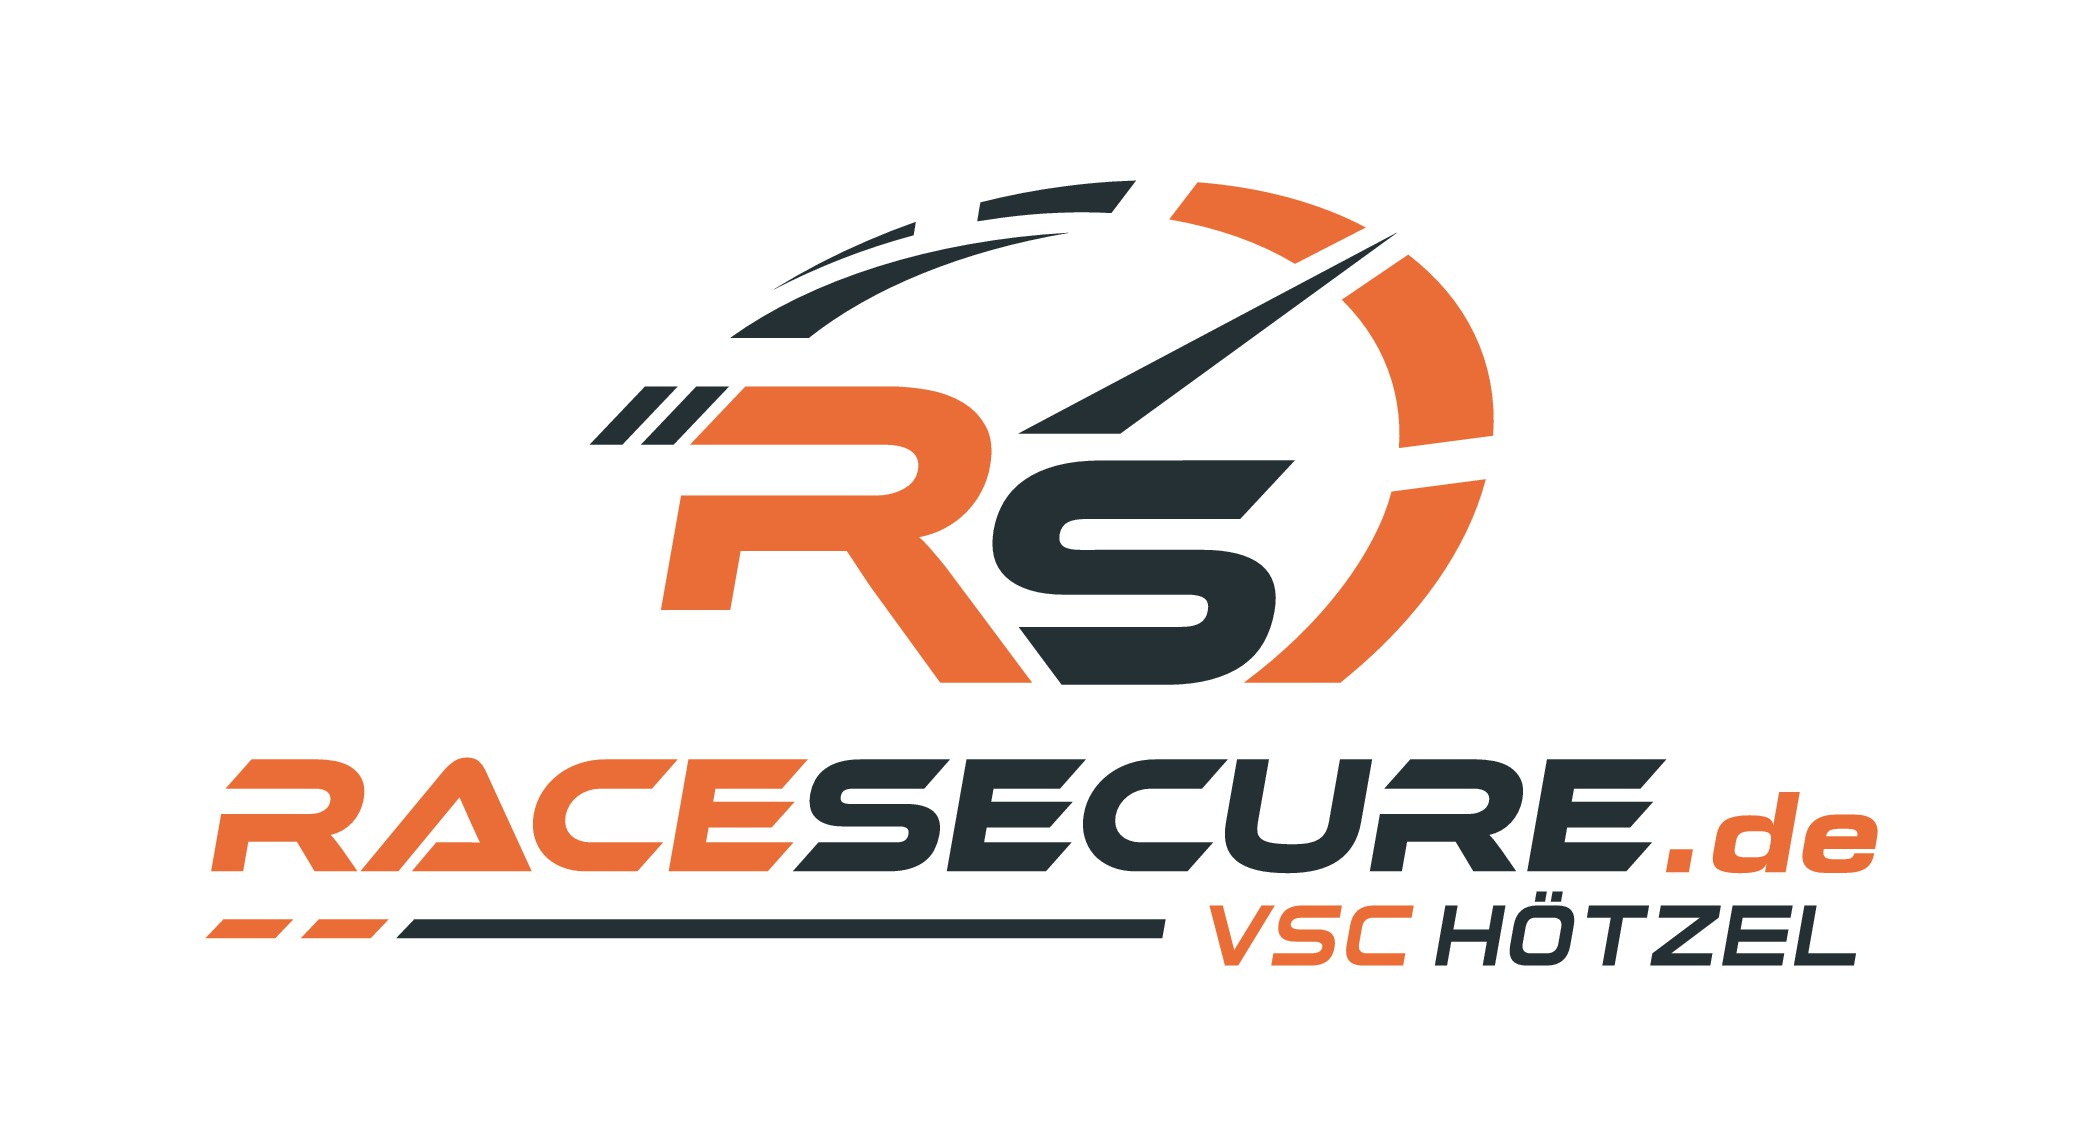 RaceSecure - modern and legitimate logo for motorsport insurance